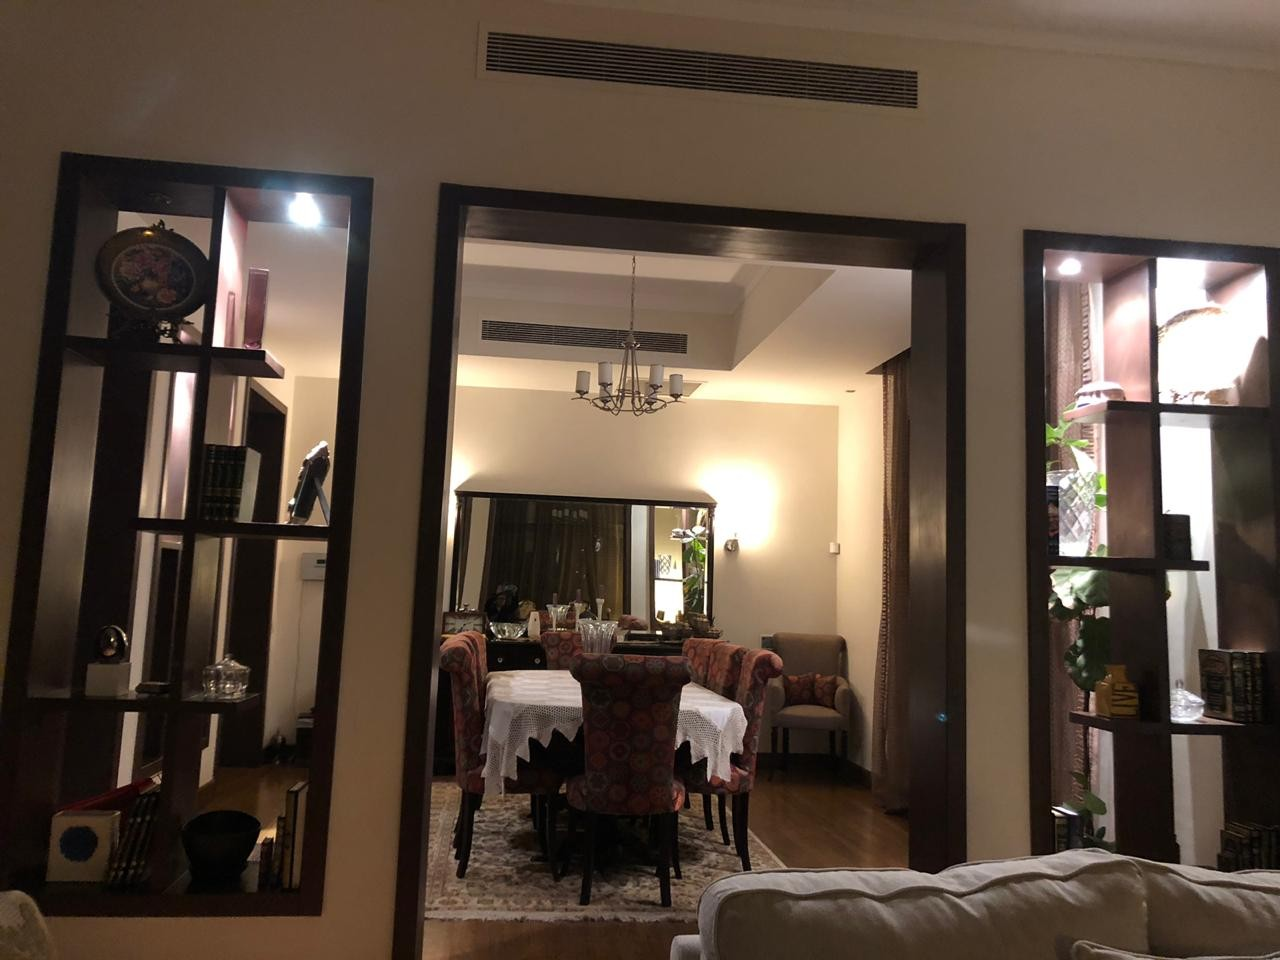 Villas For Rent In New Cairo Lake View -#4